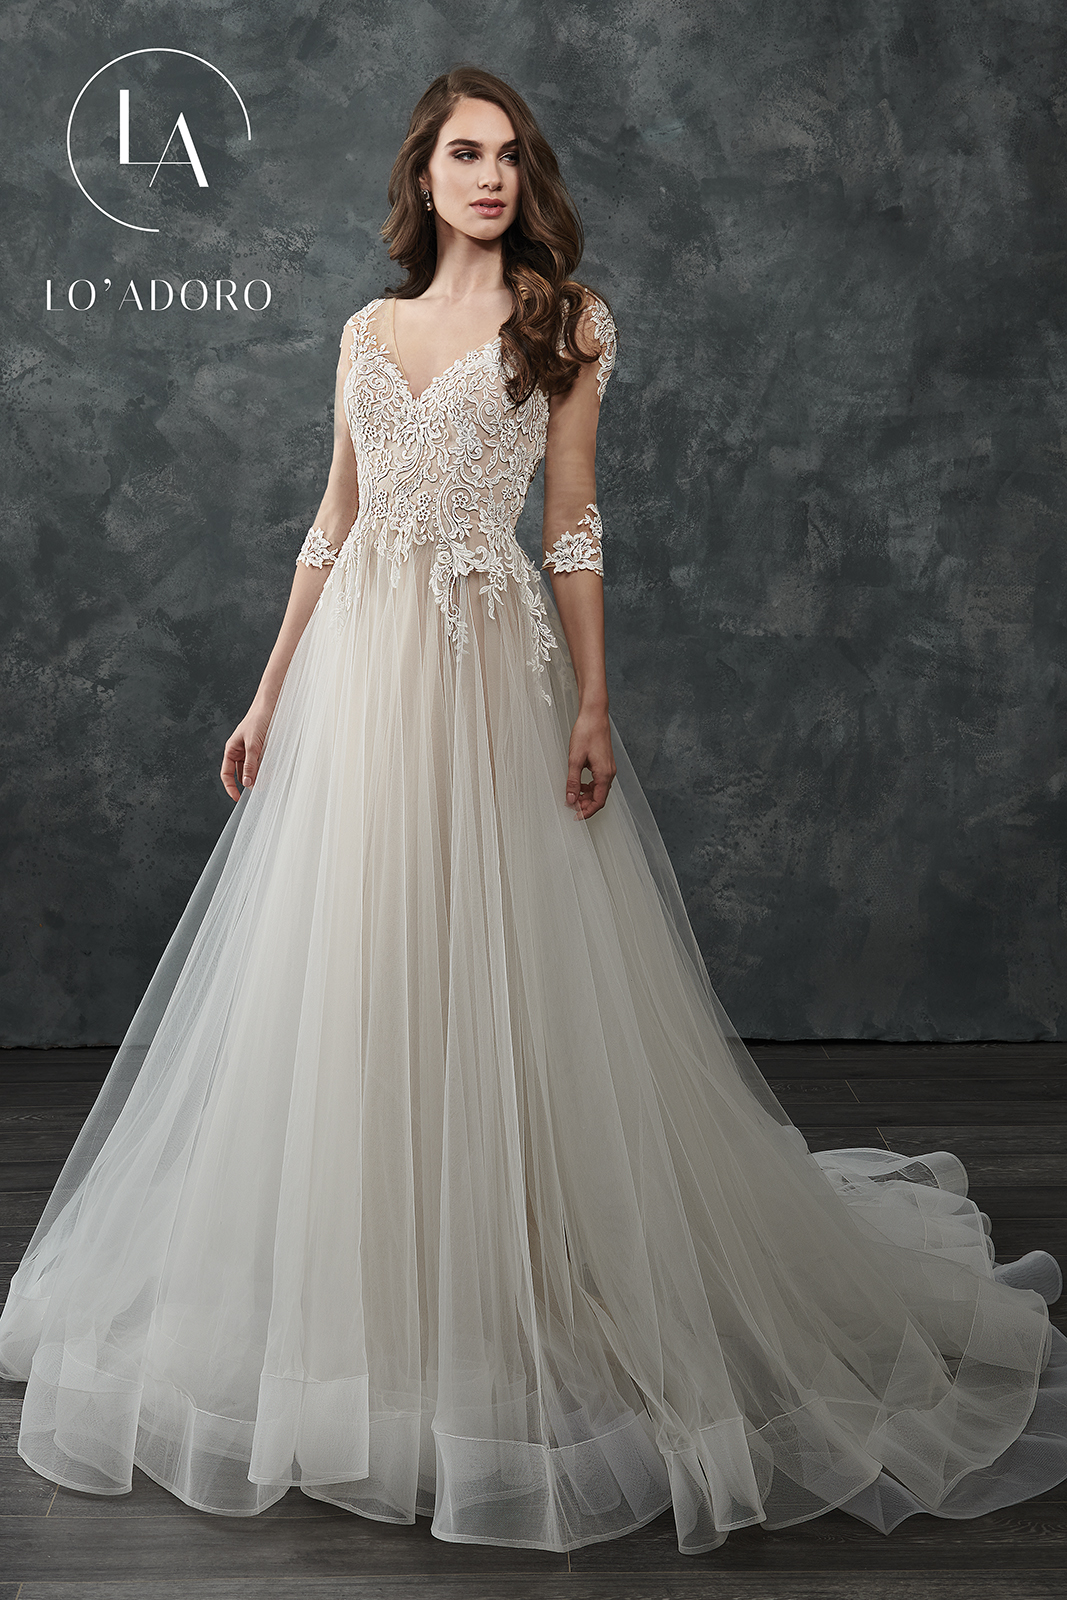 V-Neck Ball Gowns Lo' Adoro Bridal in Nude Color